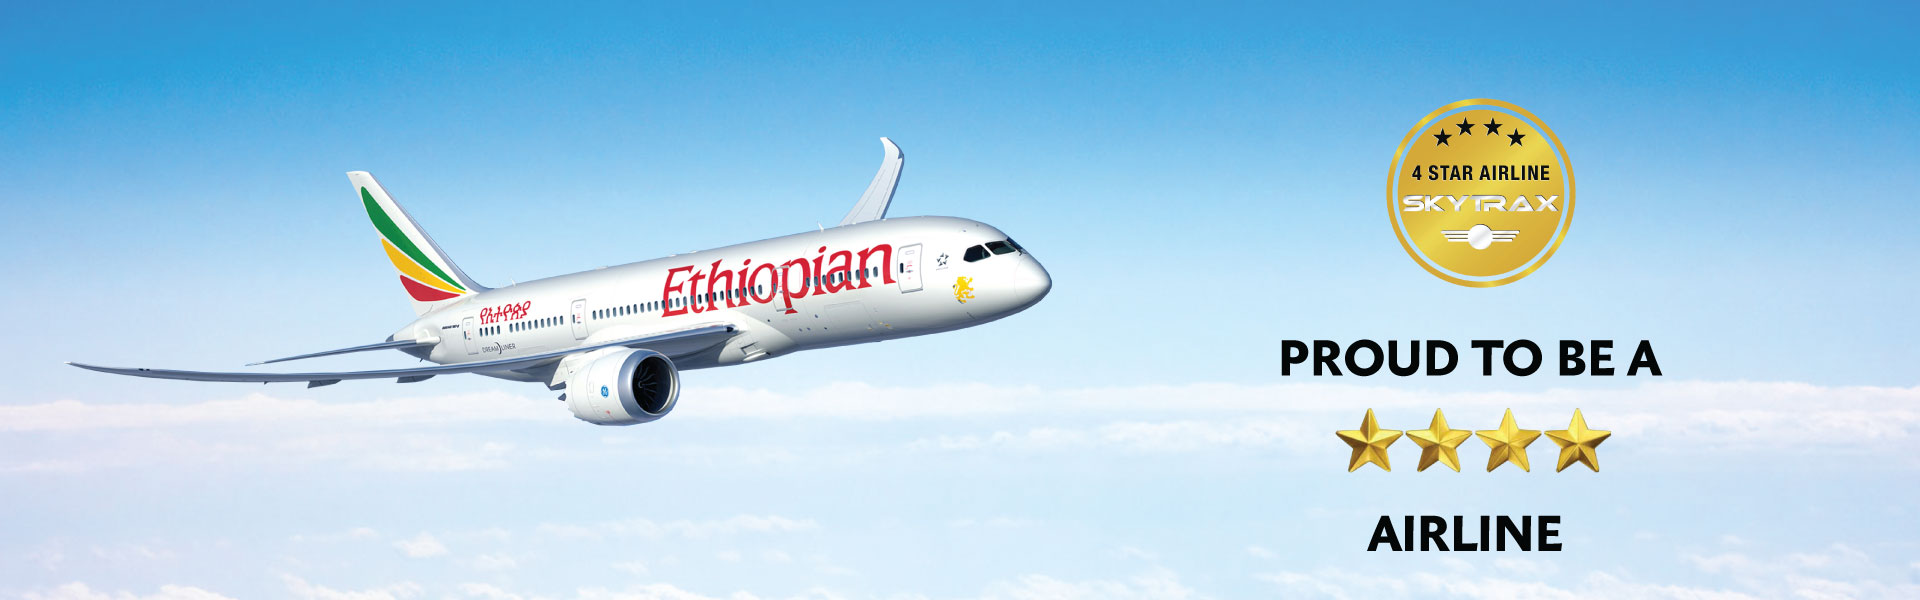 Ethiopian Airlines Group Awarded 4 Star Ranking by SKYTRAX